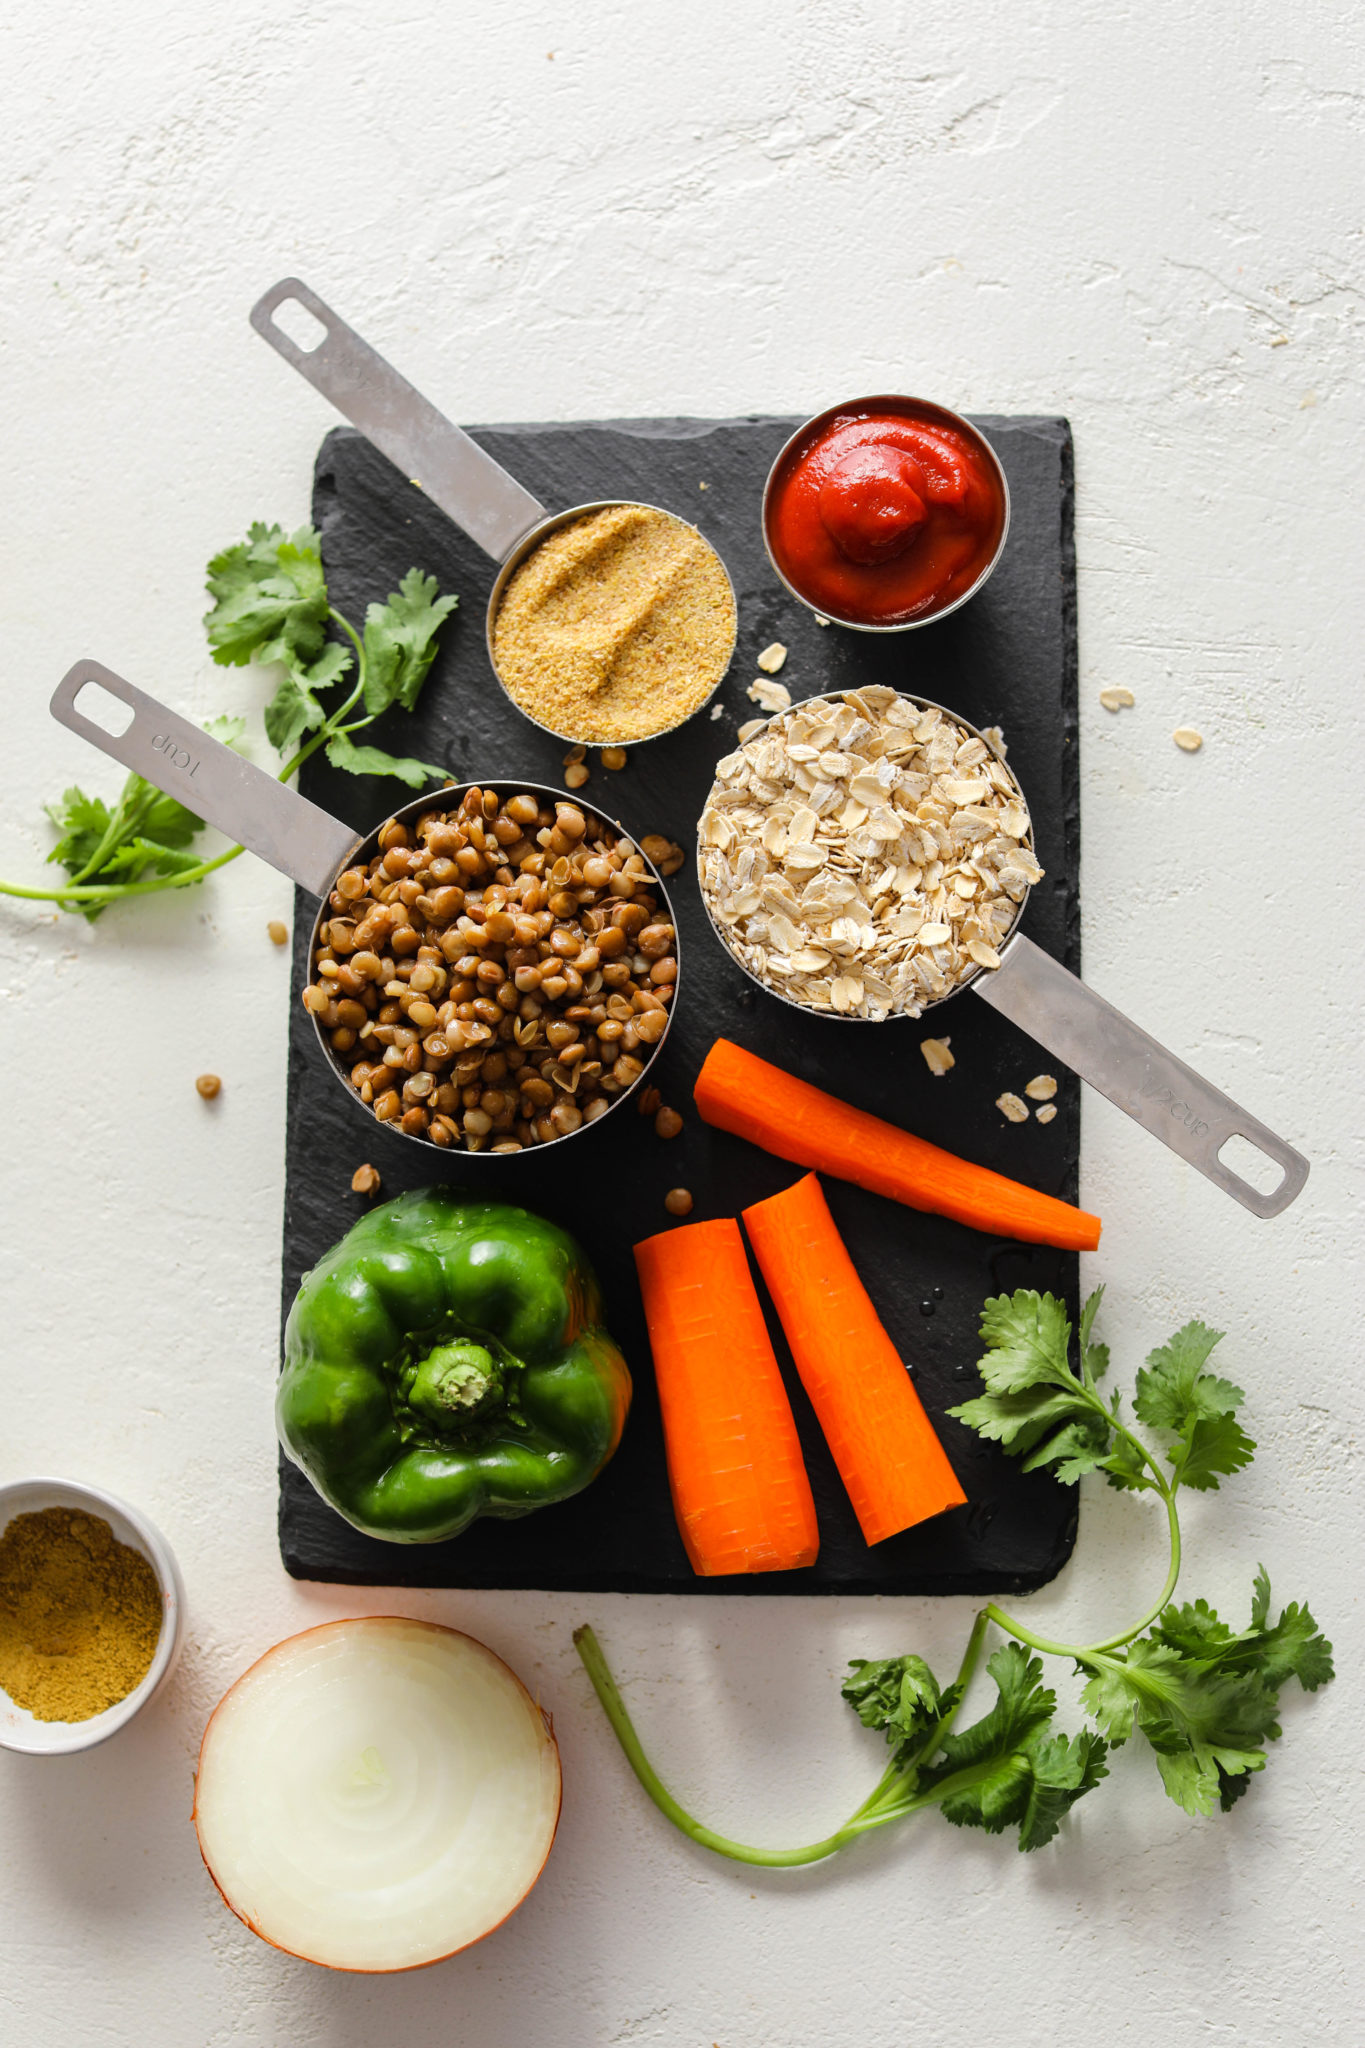 Lentil Oat Loaf (Vegan & Gluten-Free!) Ingredients